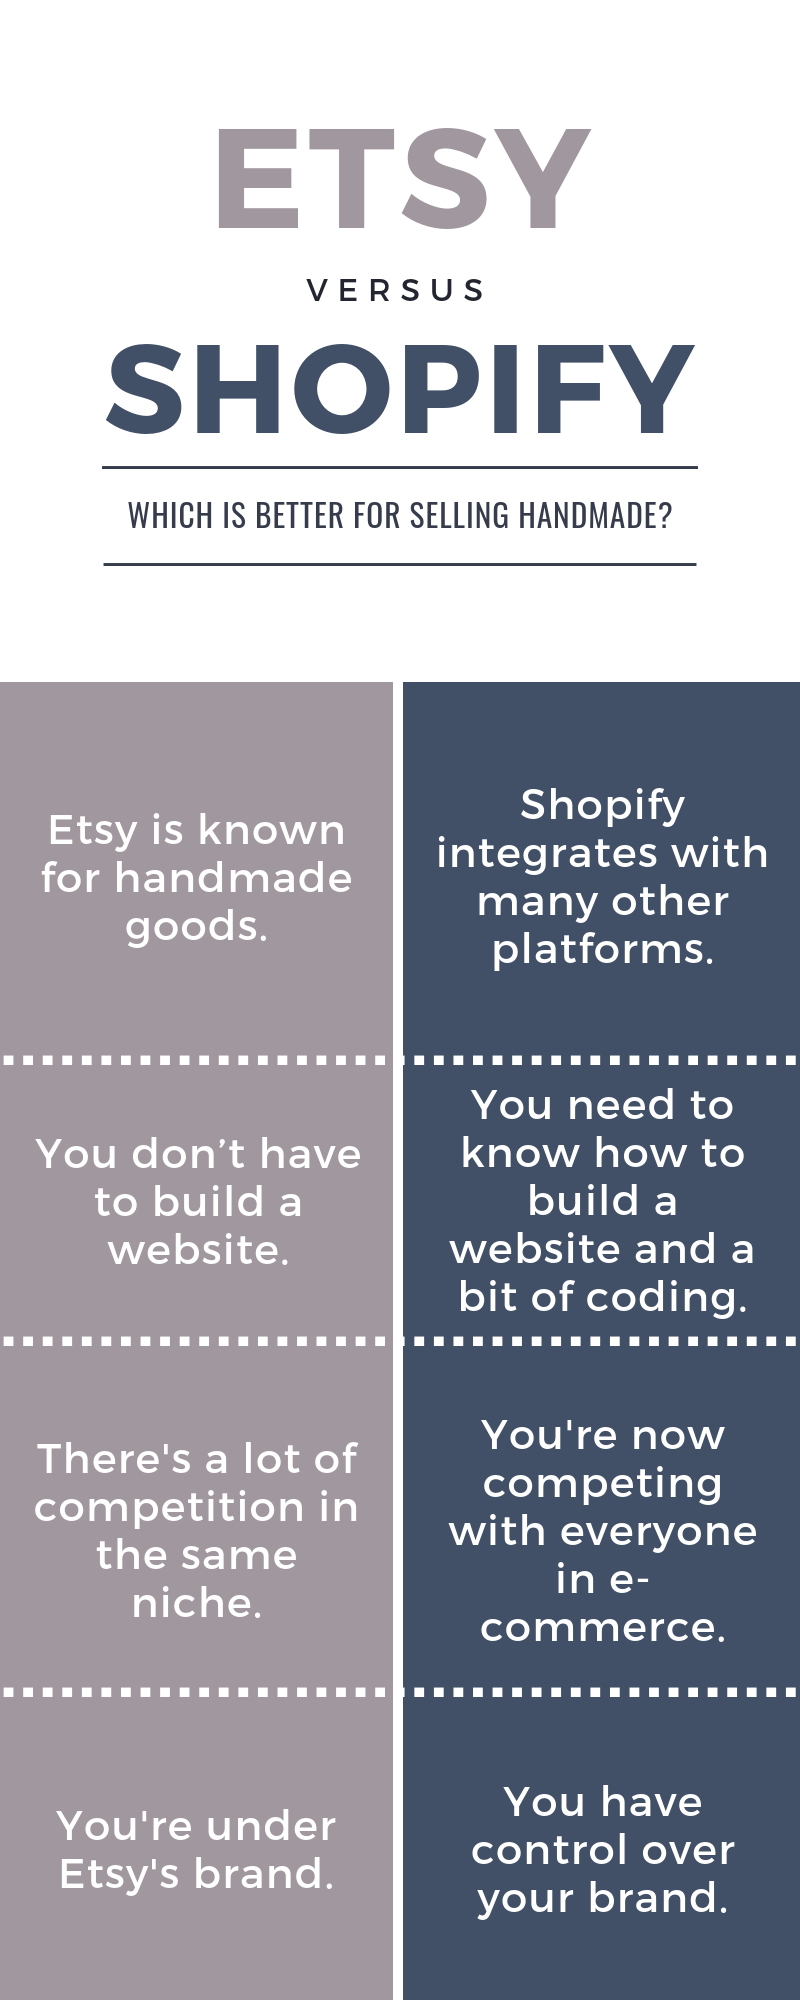 Shopify versus Etsy infographic | Thoughtfully Handmade